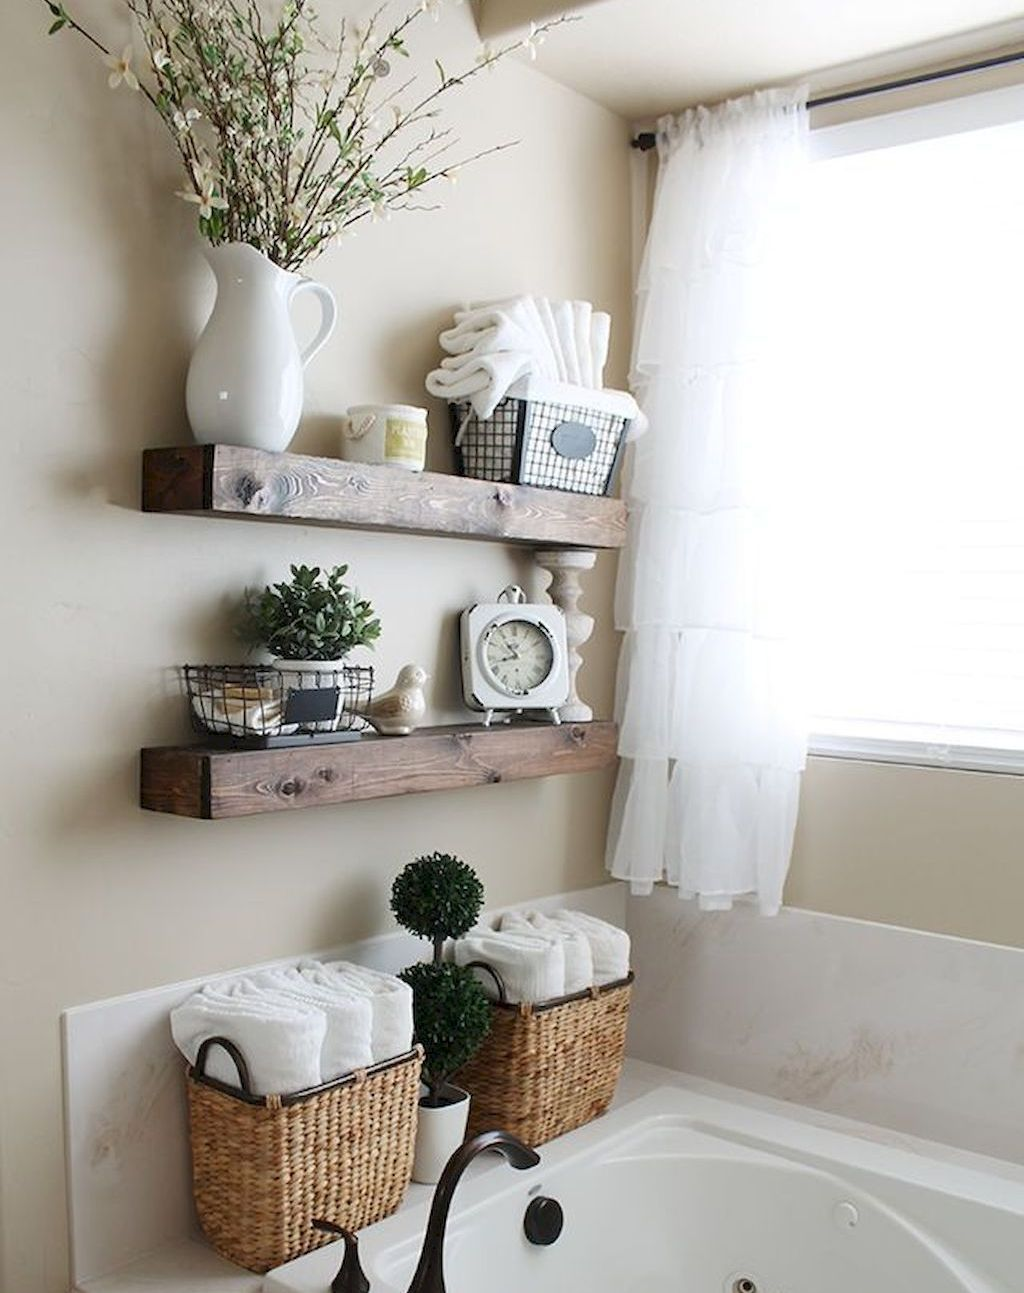 110 spectacular farmhouse bathroom decor ideas (46 | bathroom ideas ...